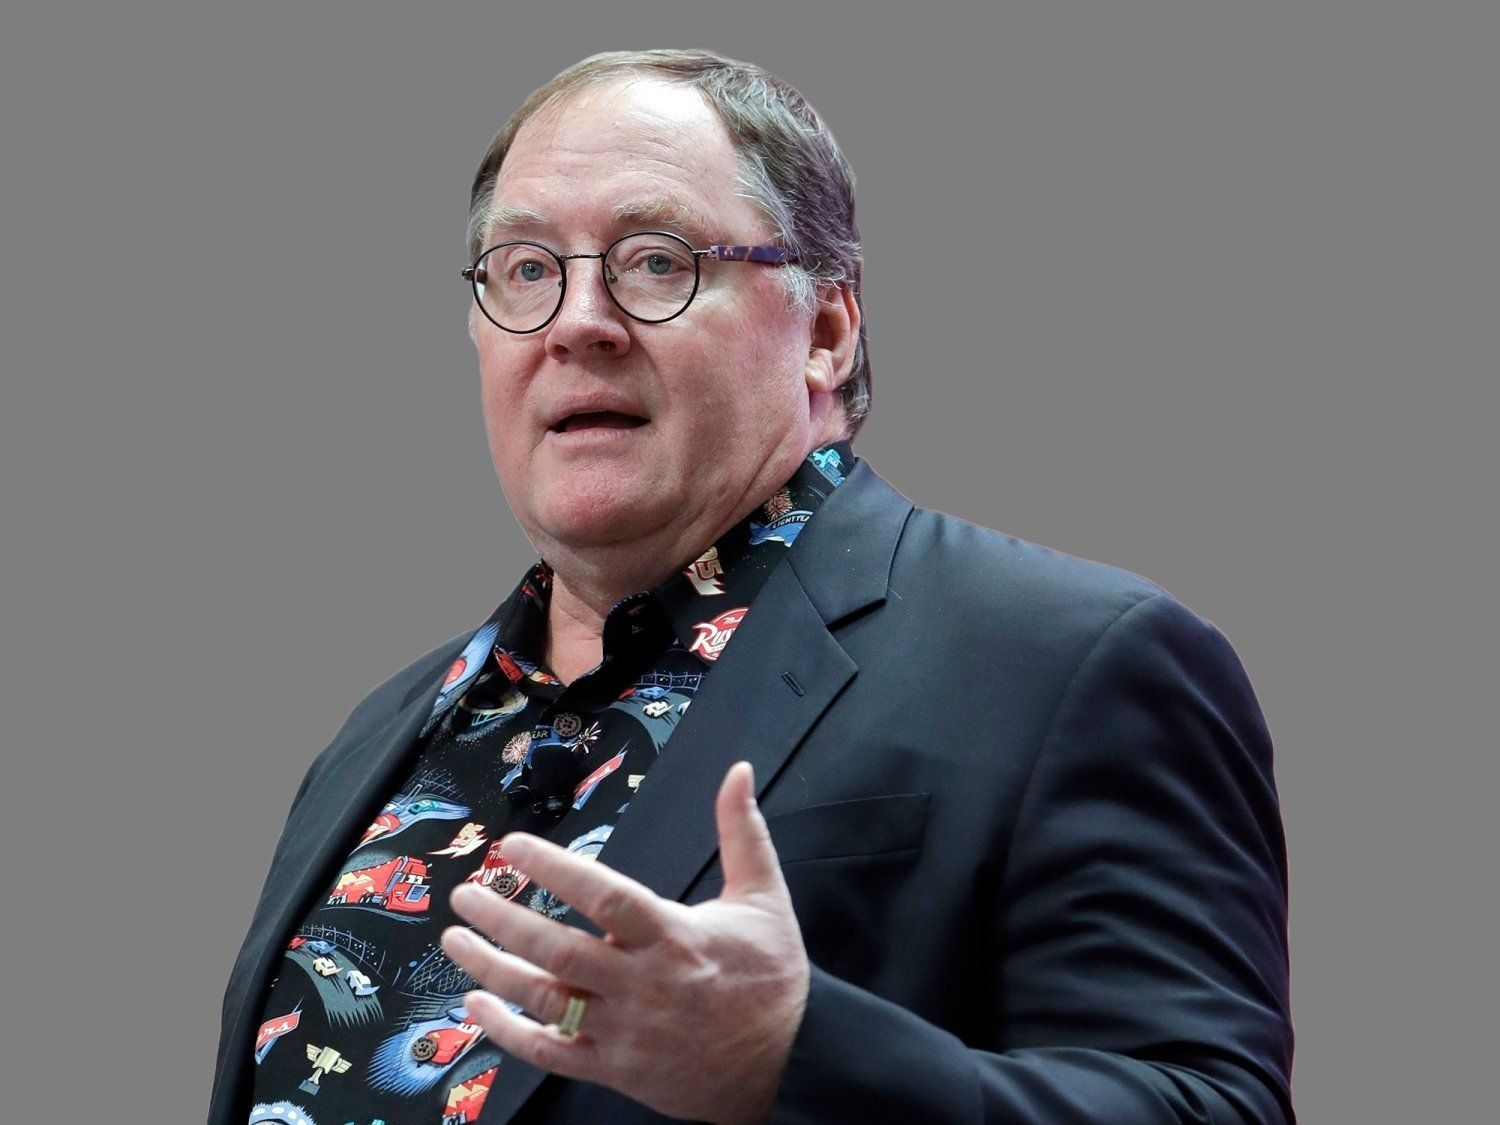 John Lasseter, who stepped down from Pixar after reports of serial sexual harassment, has been named head of the animation de